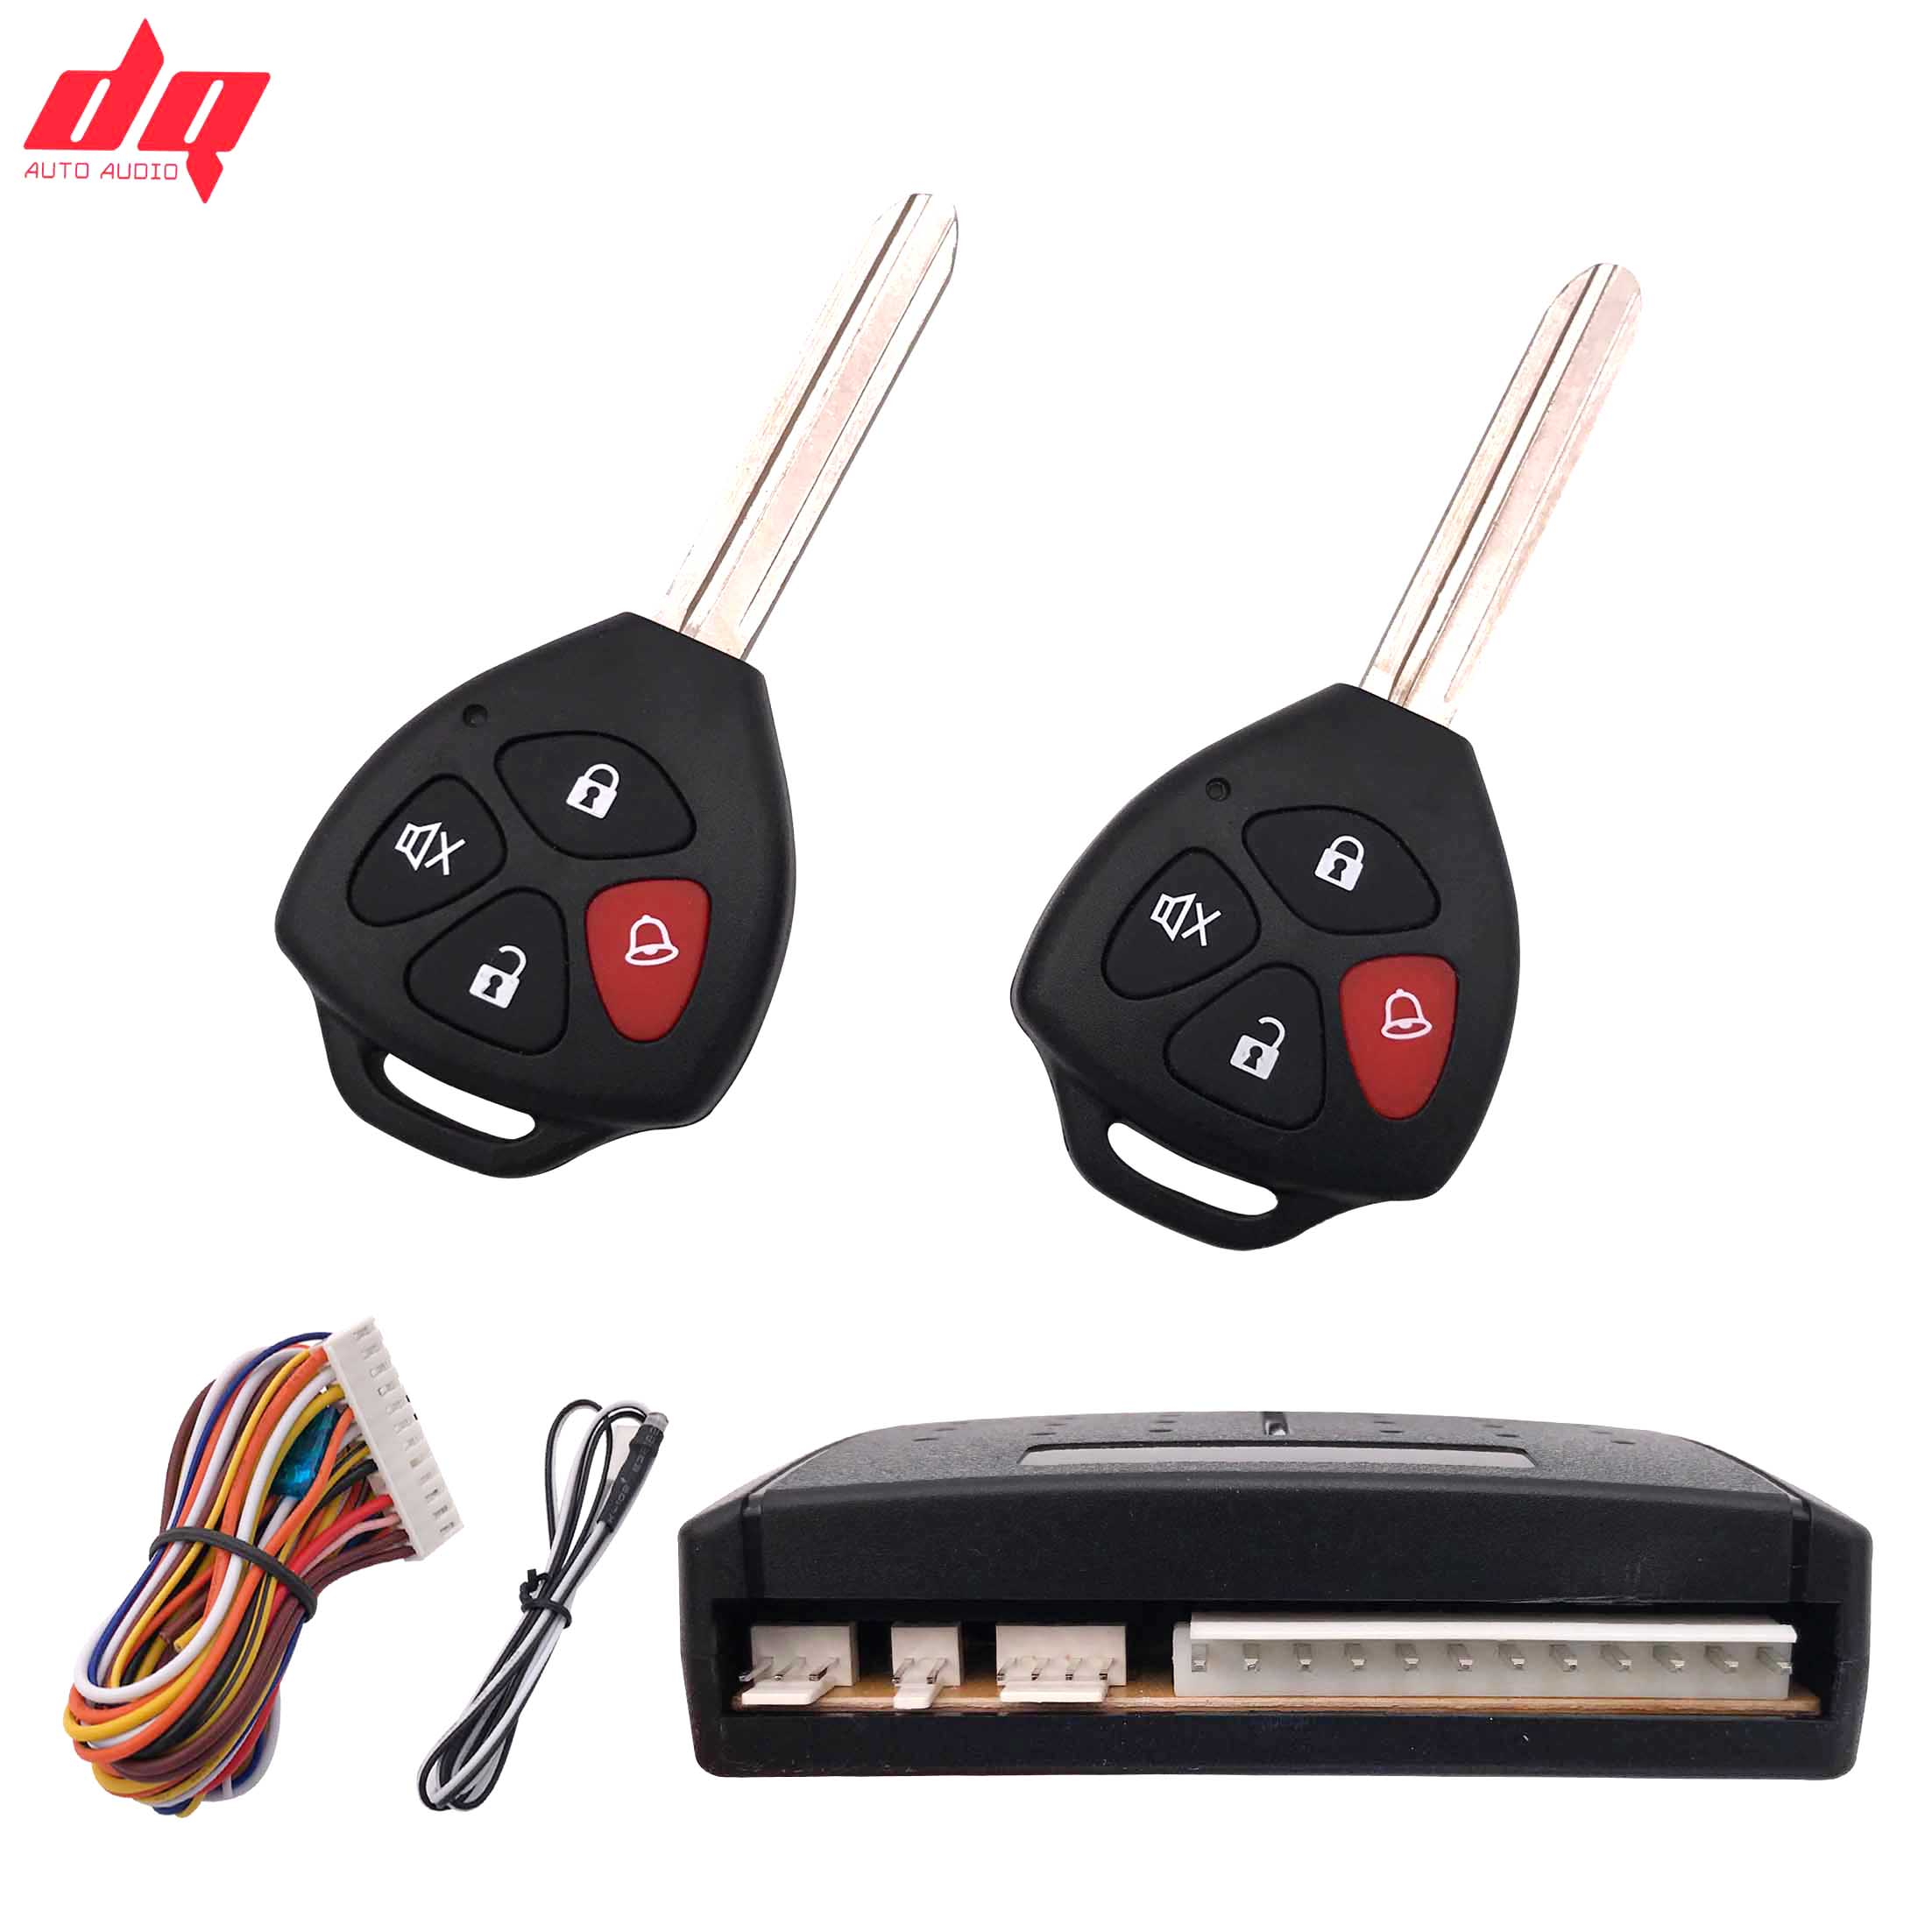 2019 car alarm for auto remote central kit door lock vehicle host working  dc 12v 2v